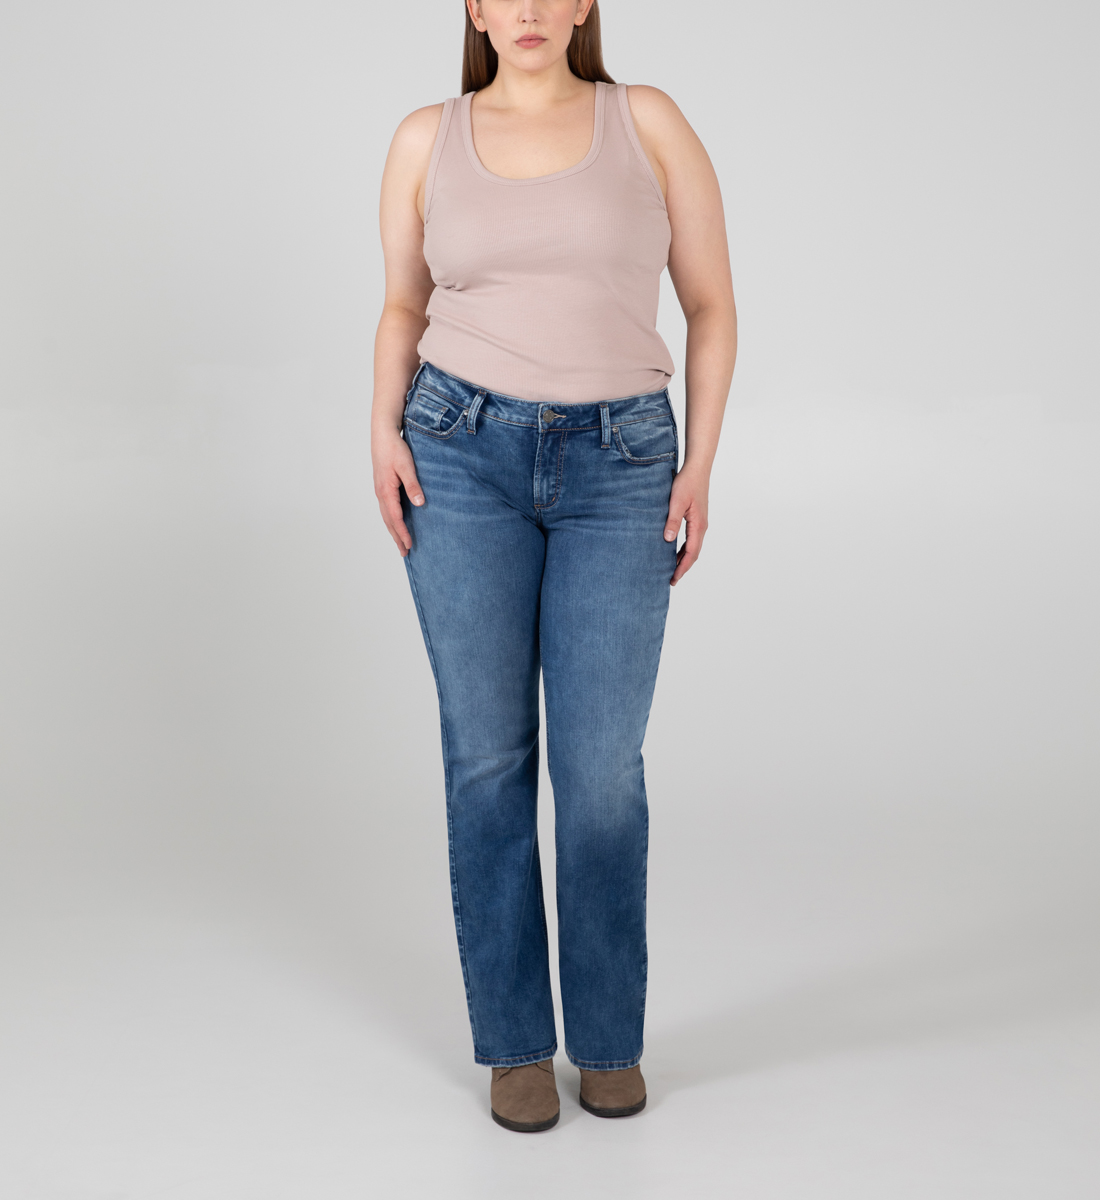 Silver Jeans Elyse Mid Rise Slim Bootcut Jeans Plus Size - Eco-Friendly Fabric